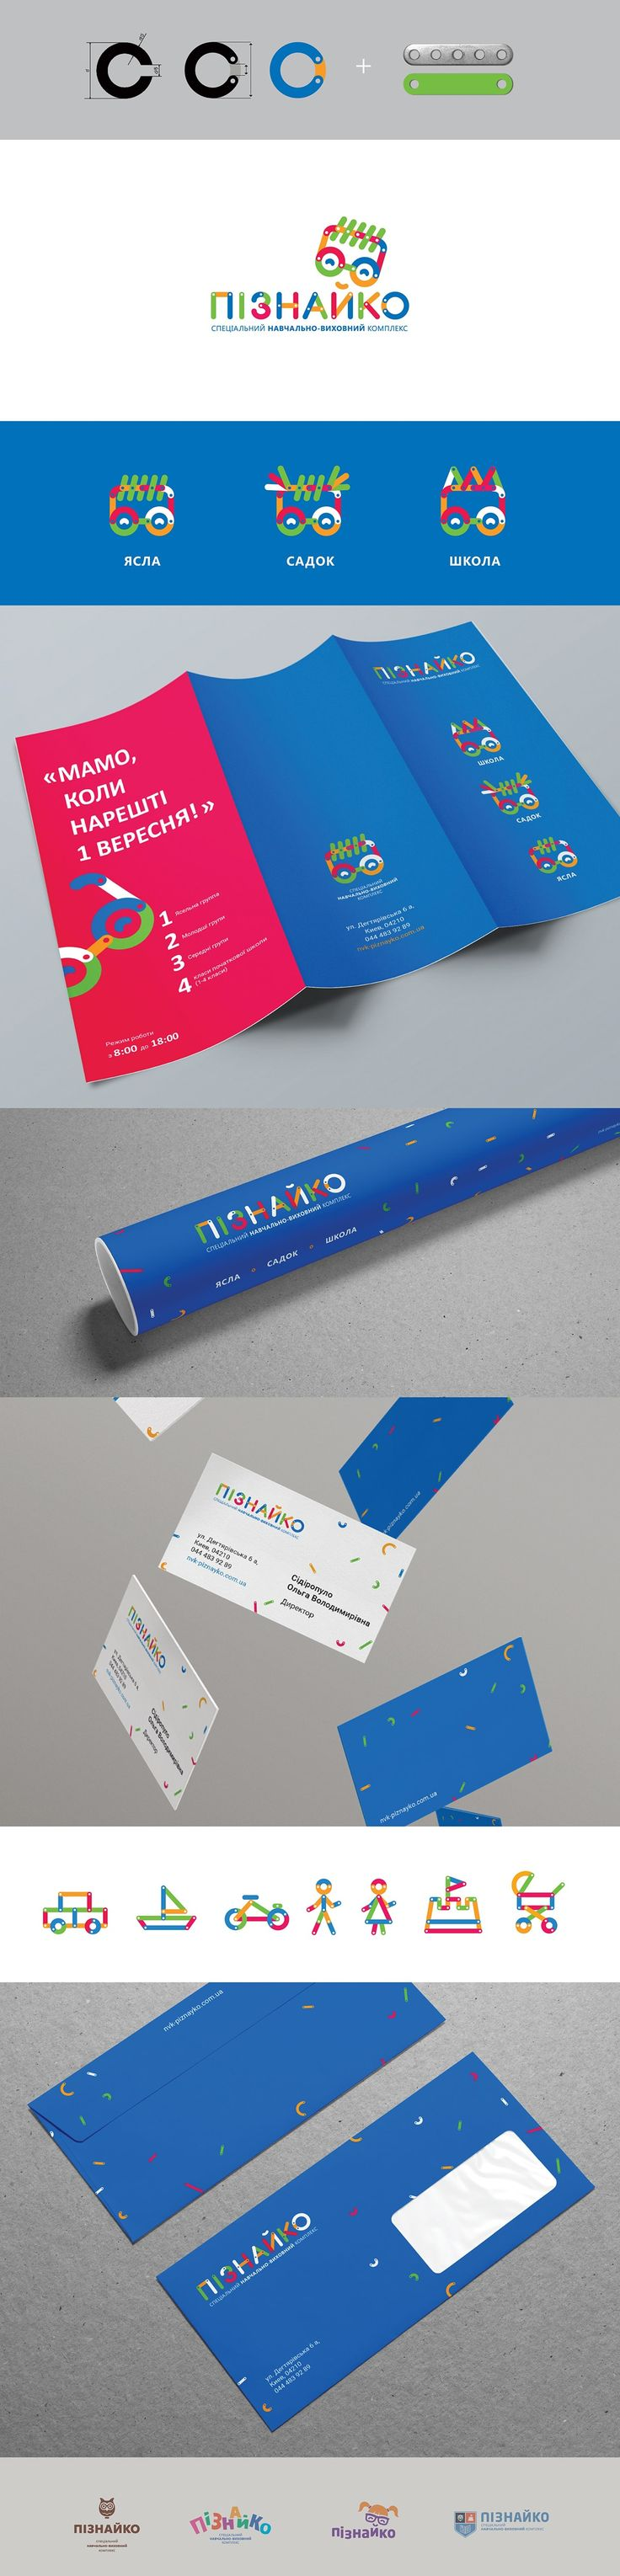 OZidea design studio #logotipe #education